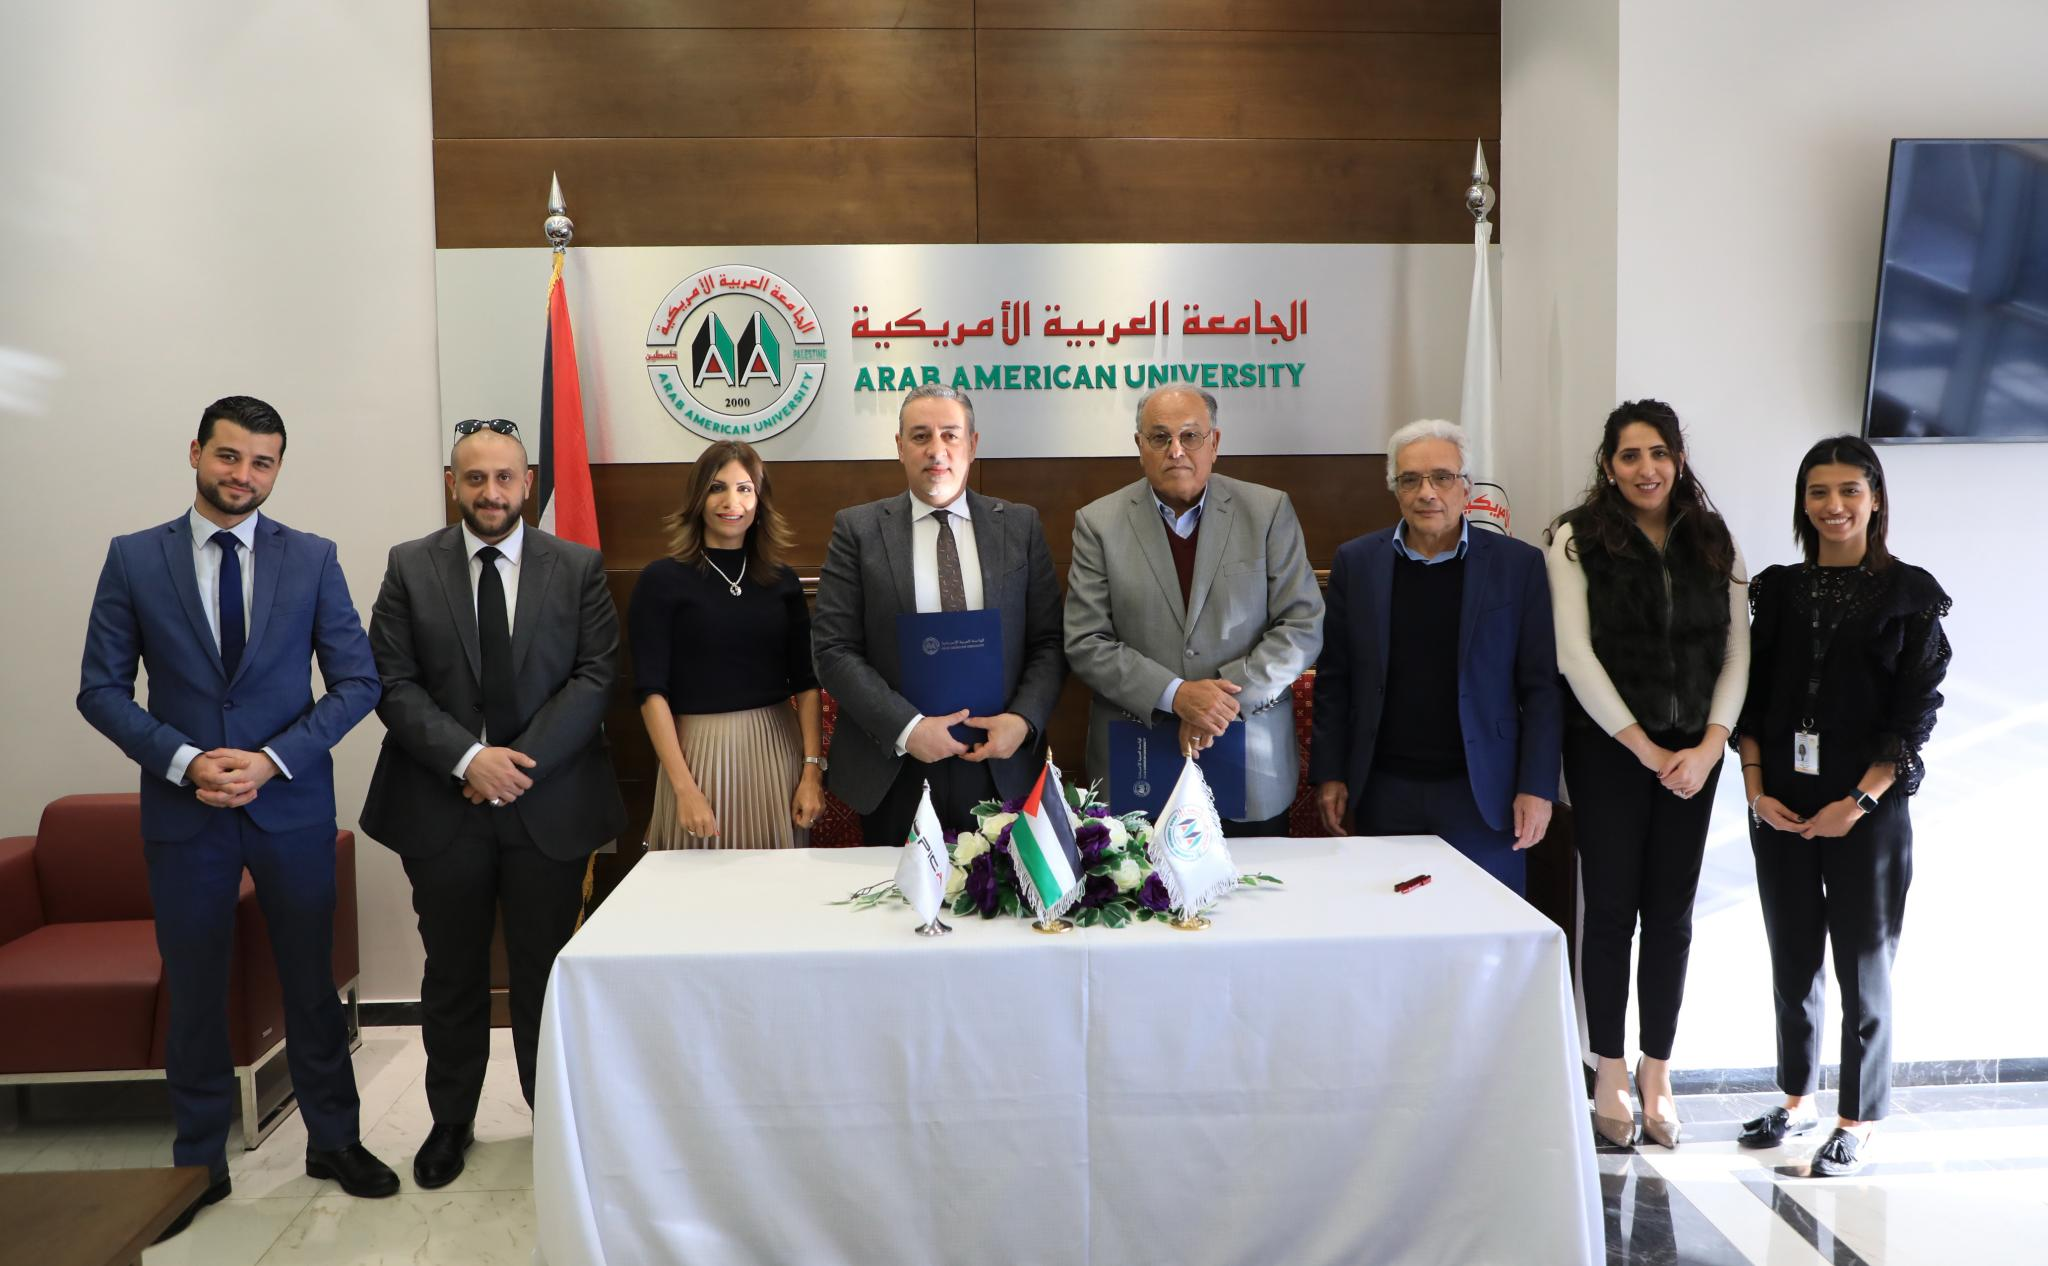 AAUP and the Palestinian International Cooperation Agency (PICA) Sign a Cooperation Agreement for Development and Mobility